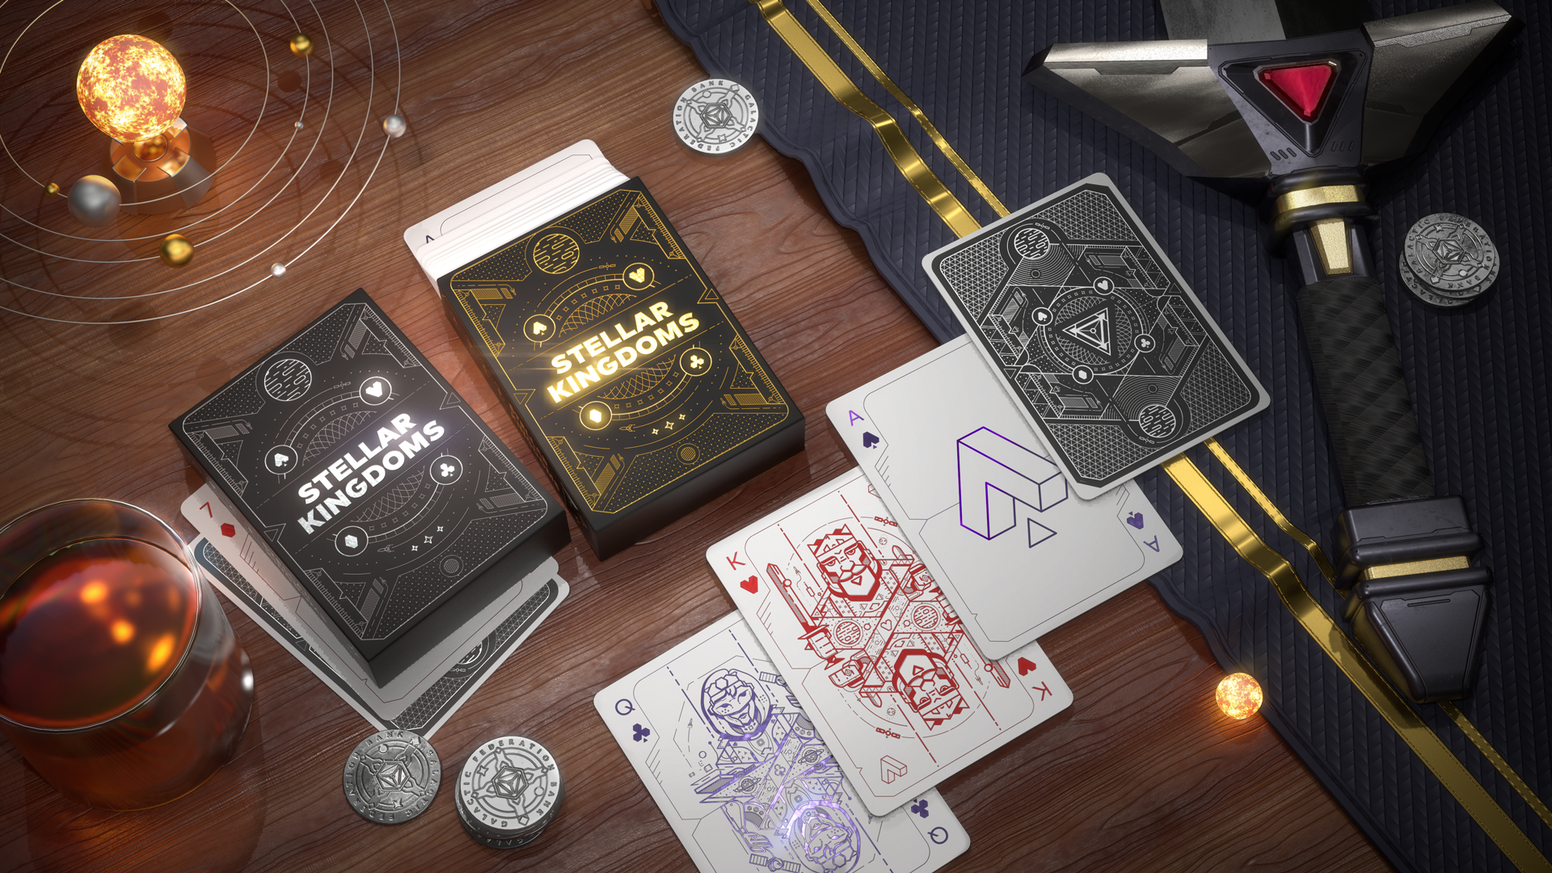 Unique playing cards set in their own Sci-Fi universe based on the known tropes of adventure movies, games and novels